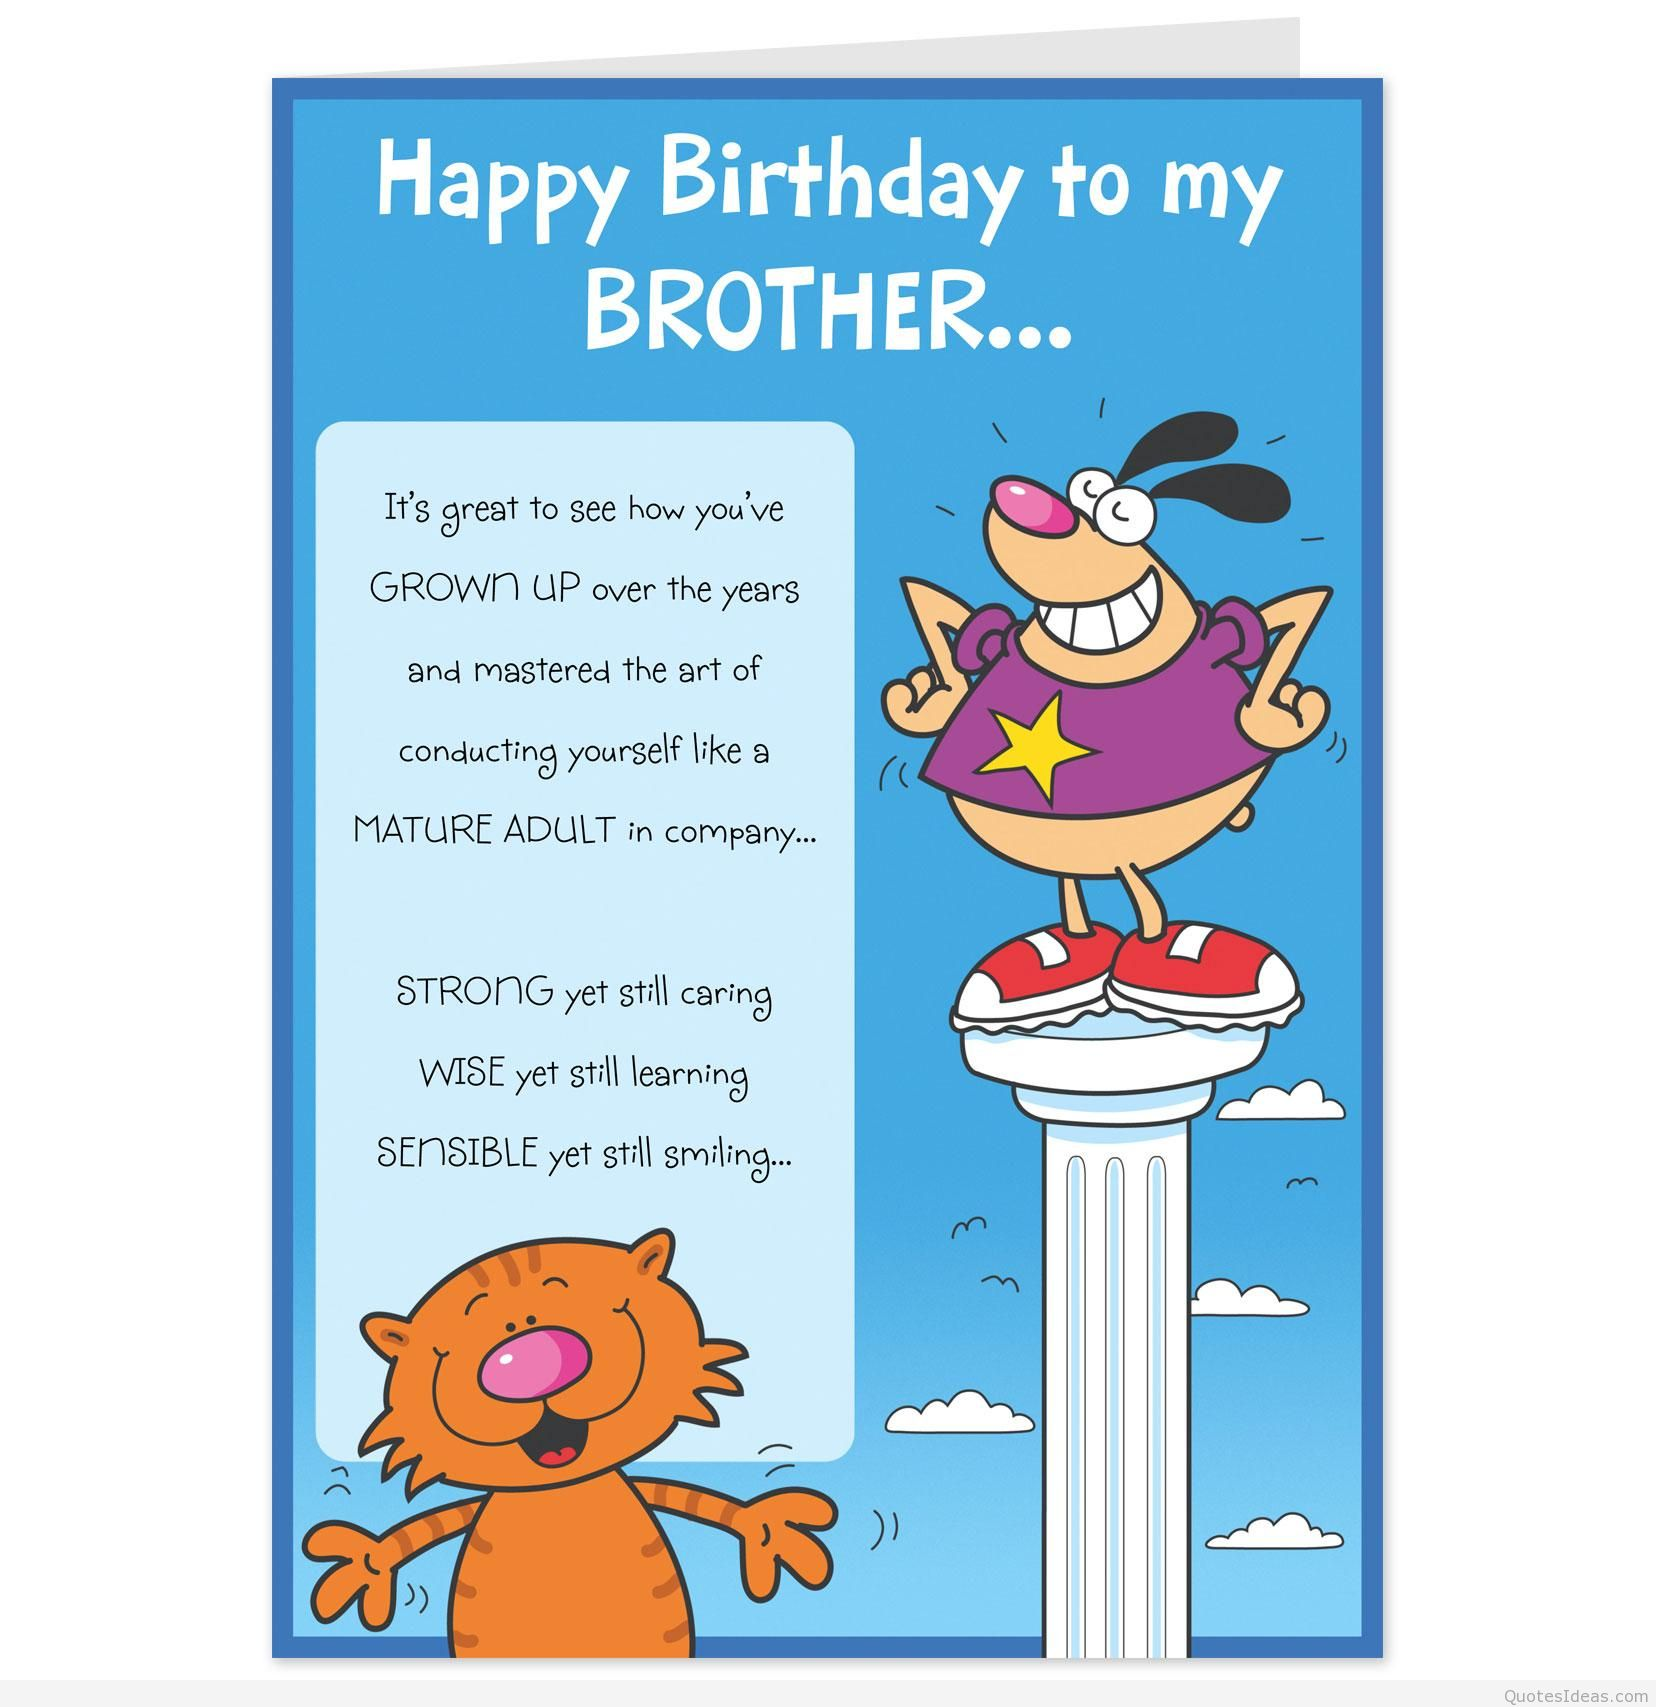 funny happy birthday wishes for brother ; brother-in-law-birthday-cards-funny-elegant-funny-birthday-cards-brother-gangcraftnet-of-brother-in-law-birthday-cards-funny